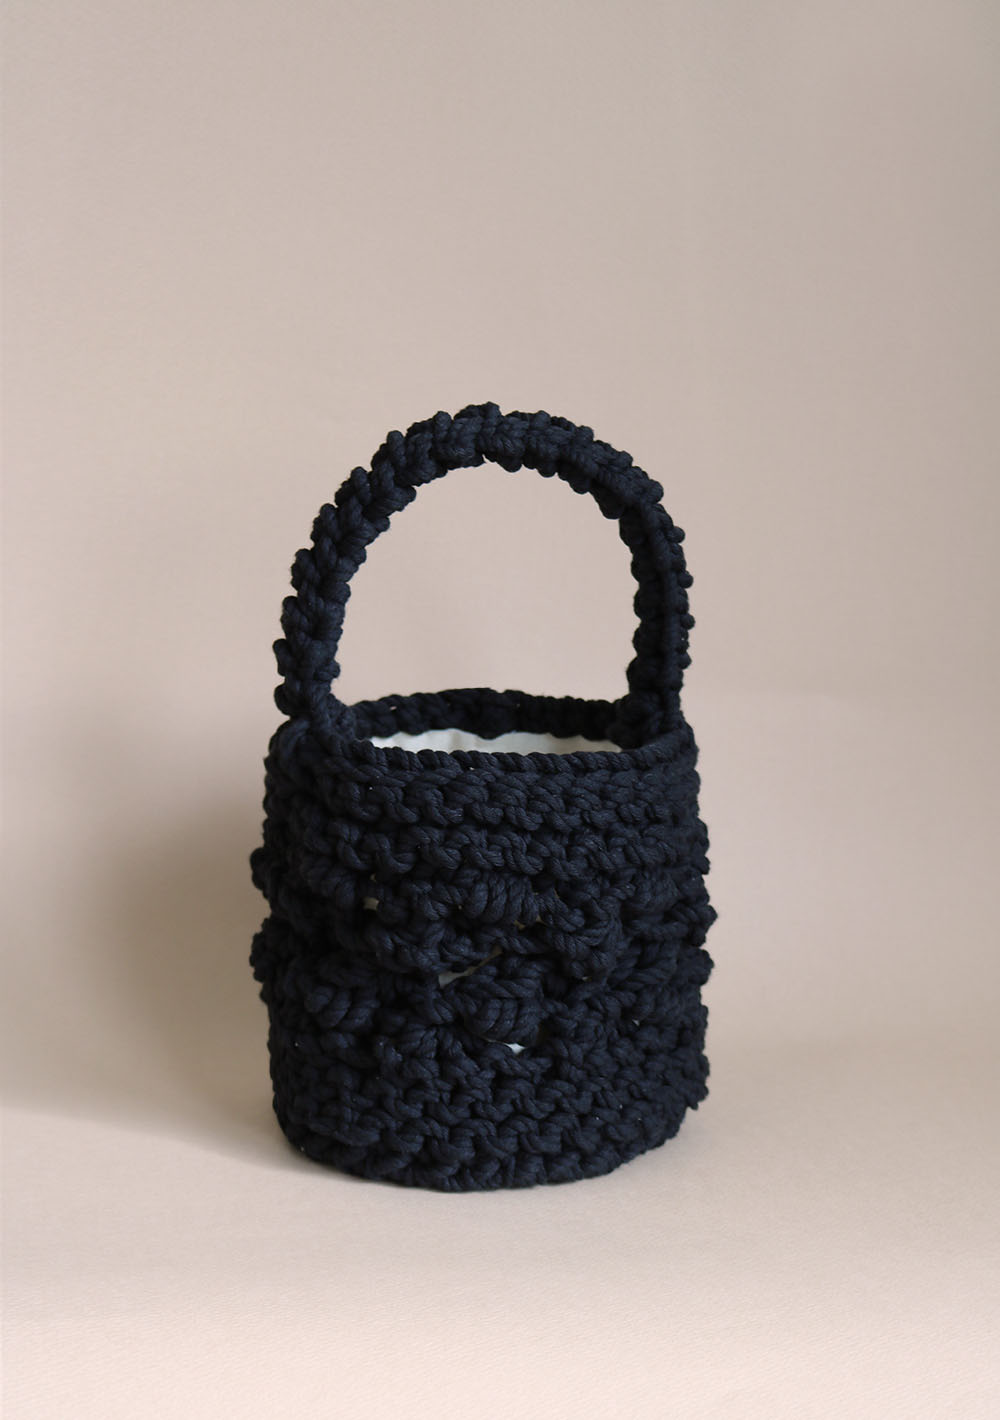 Handmade Knitting Bag-Winter 01